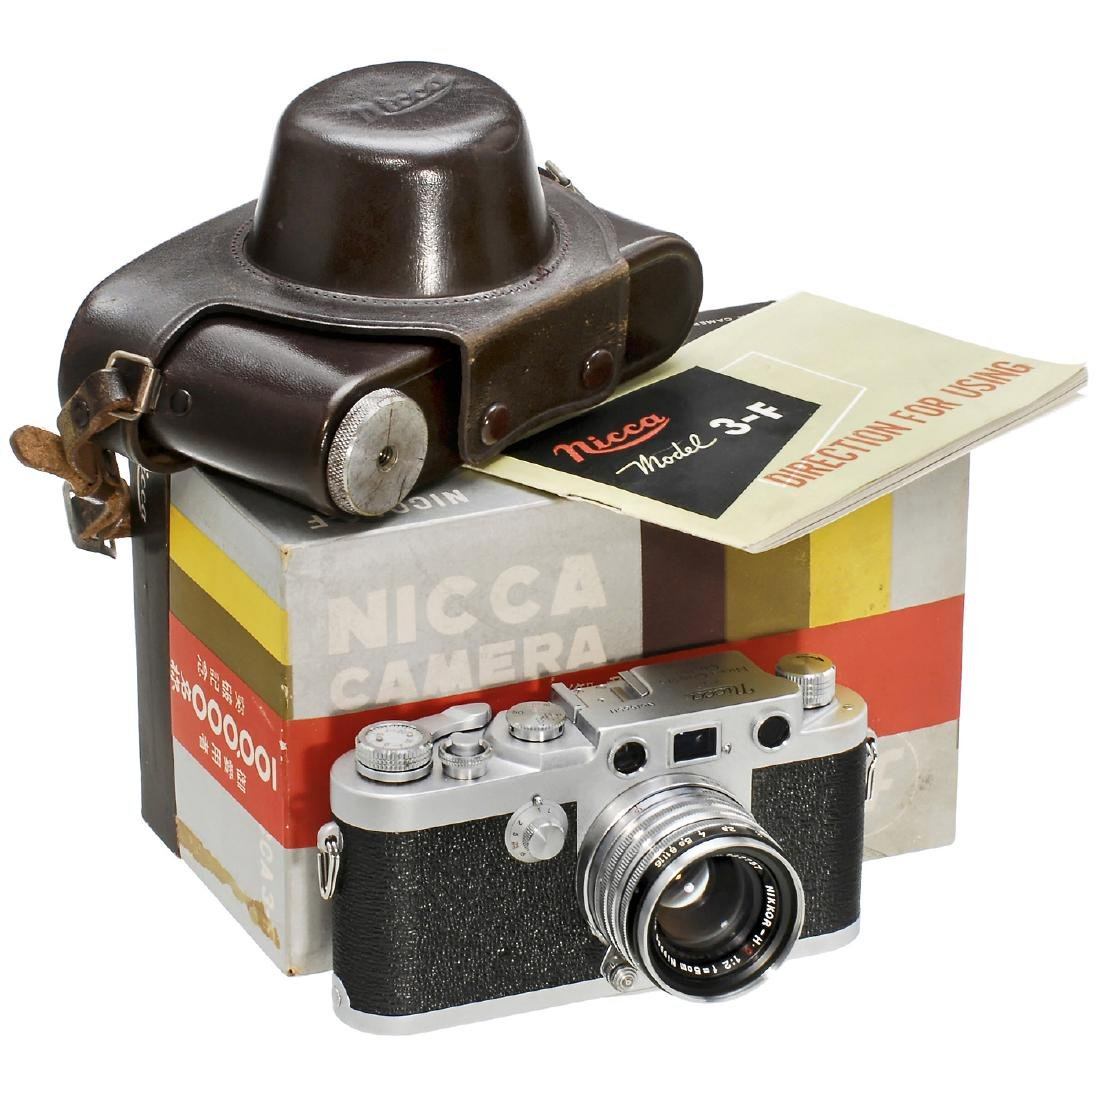 Near-Mint Nicca 3-F, 1957